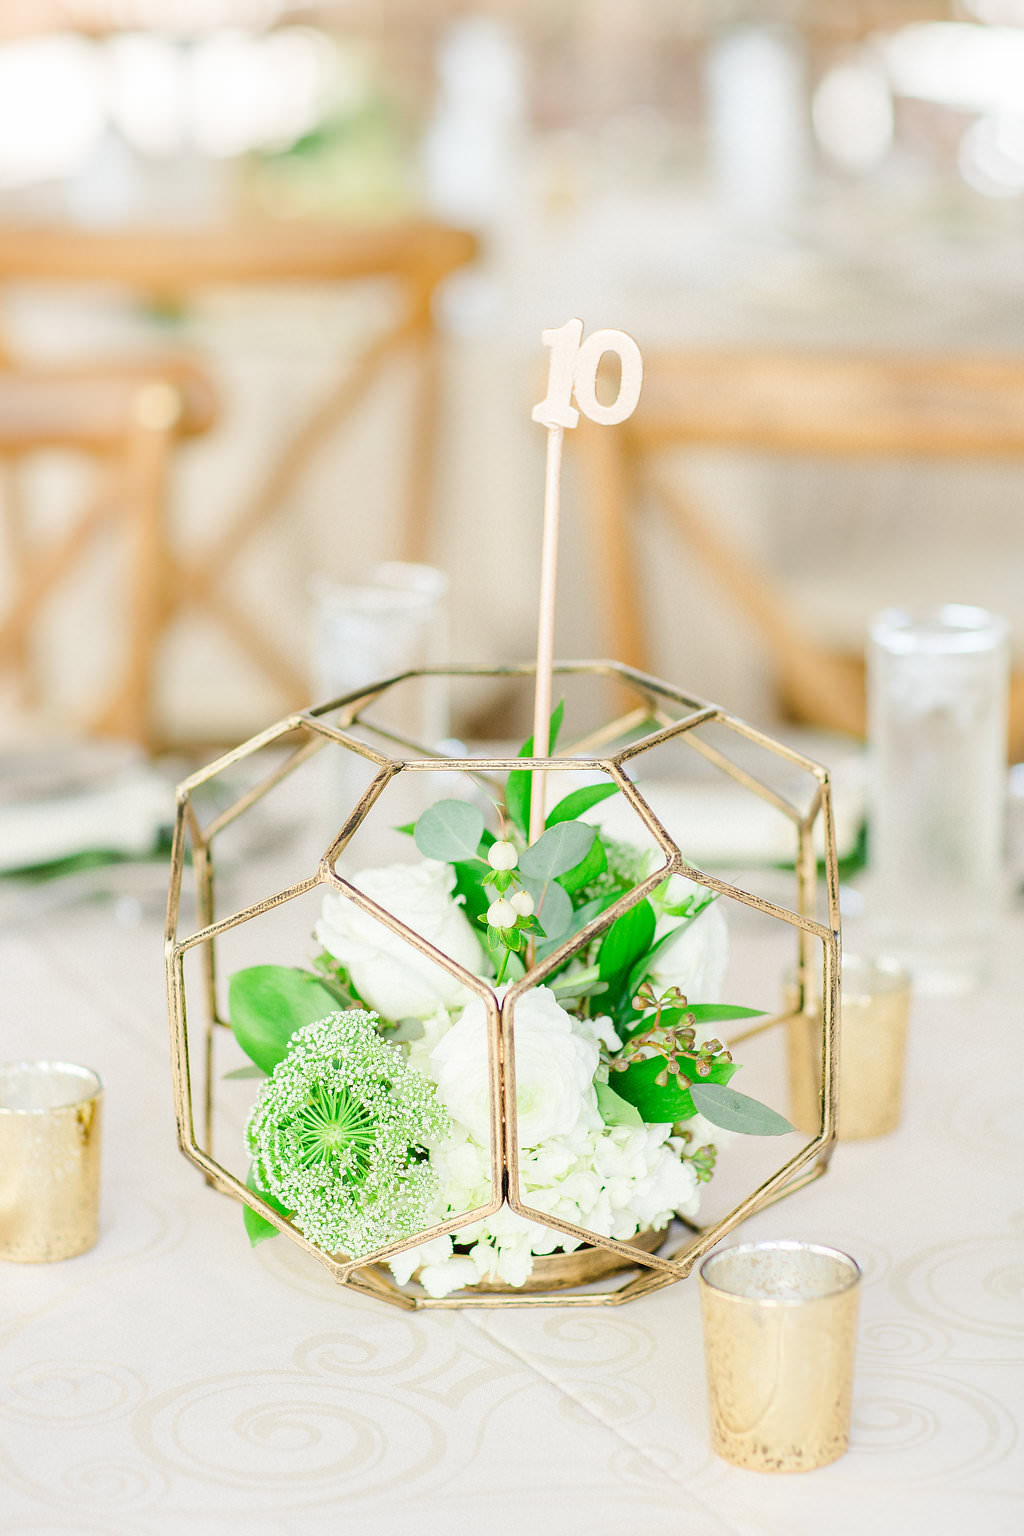 Classic, Earthy Organic Wedding Reception Decor, Low Gold Geometric Centerpiece with White and Greenery Florals, Gold Mercury Candle Votives